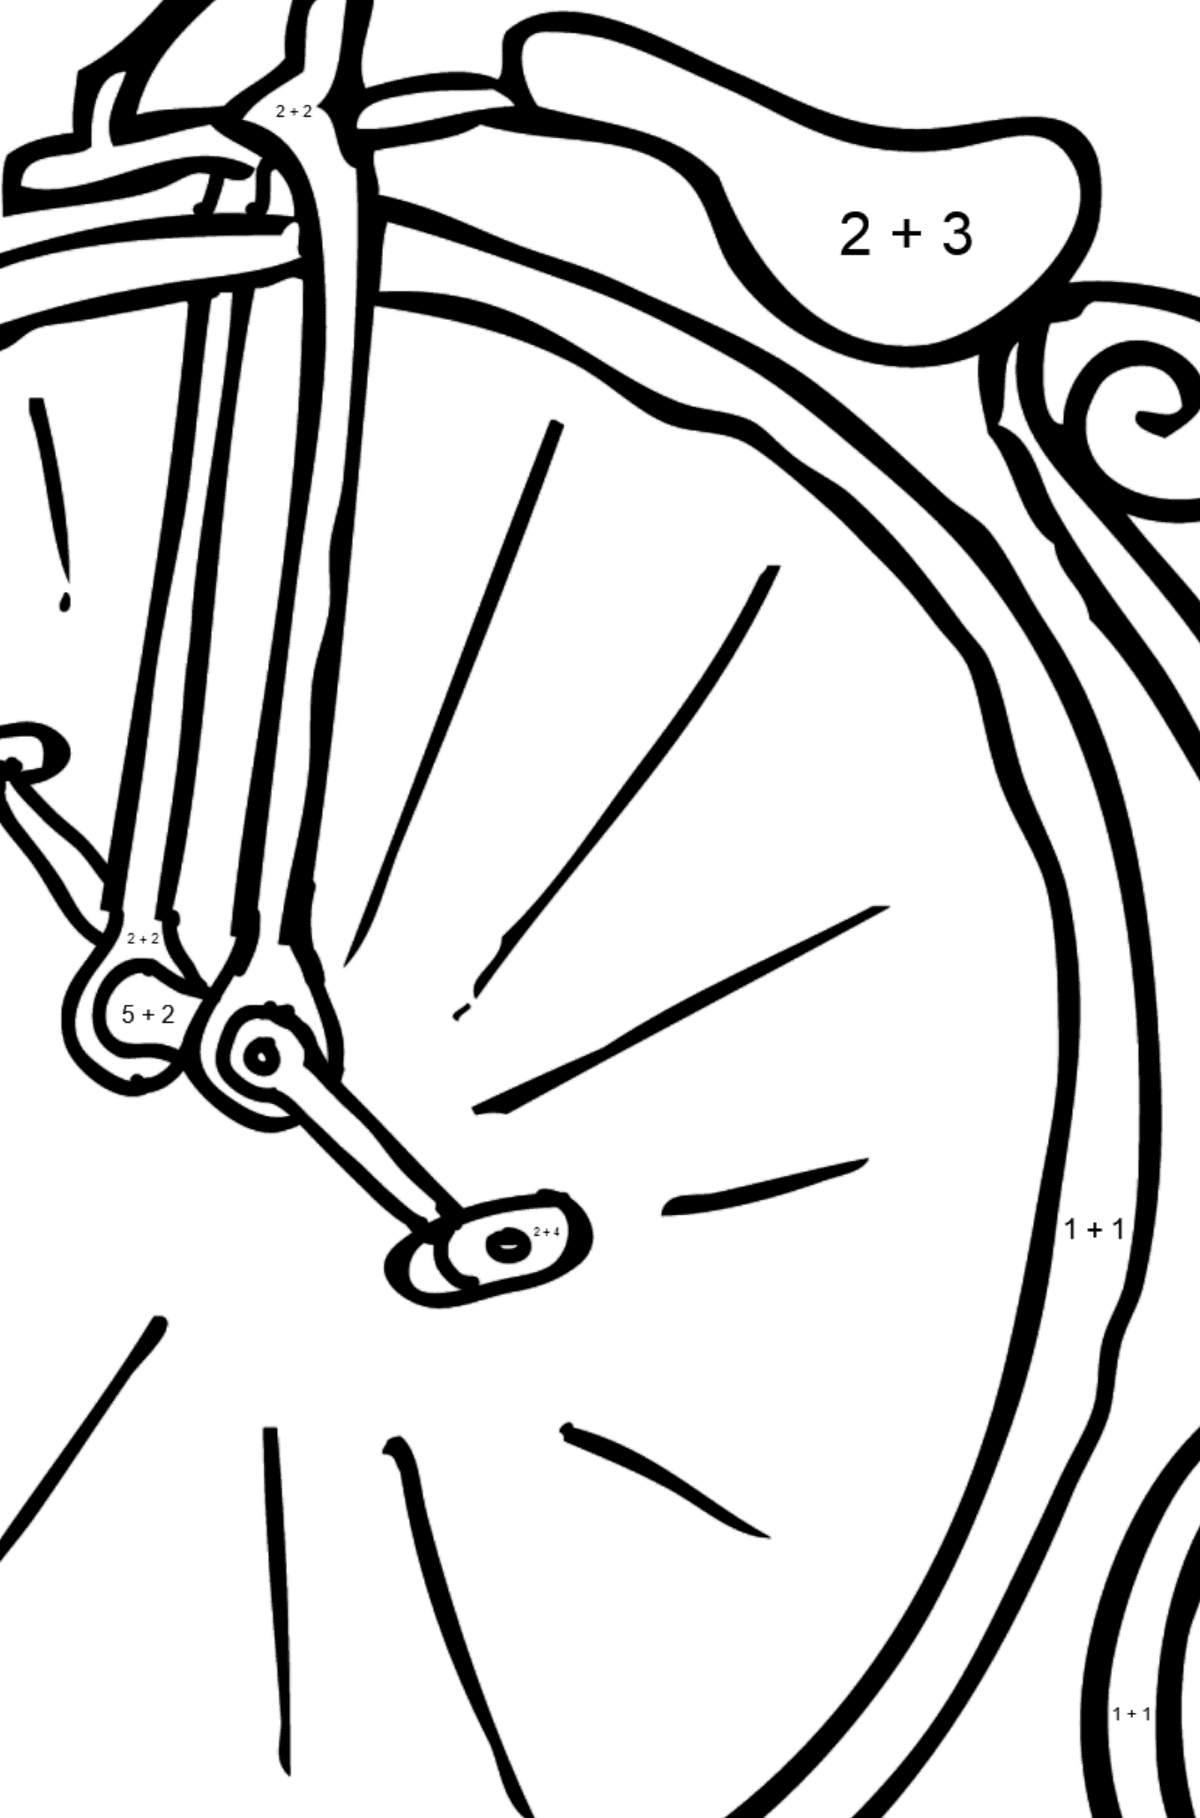 Coloring Page - A High-Wheel Cycle – Unicycle - Math Coloring - Addition for Kids